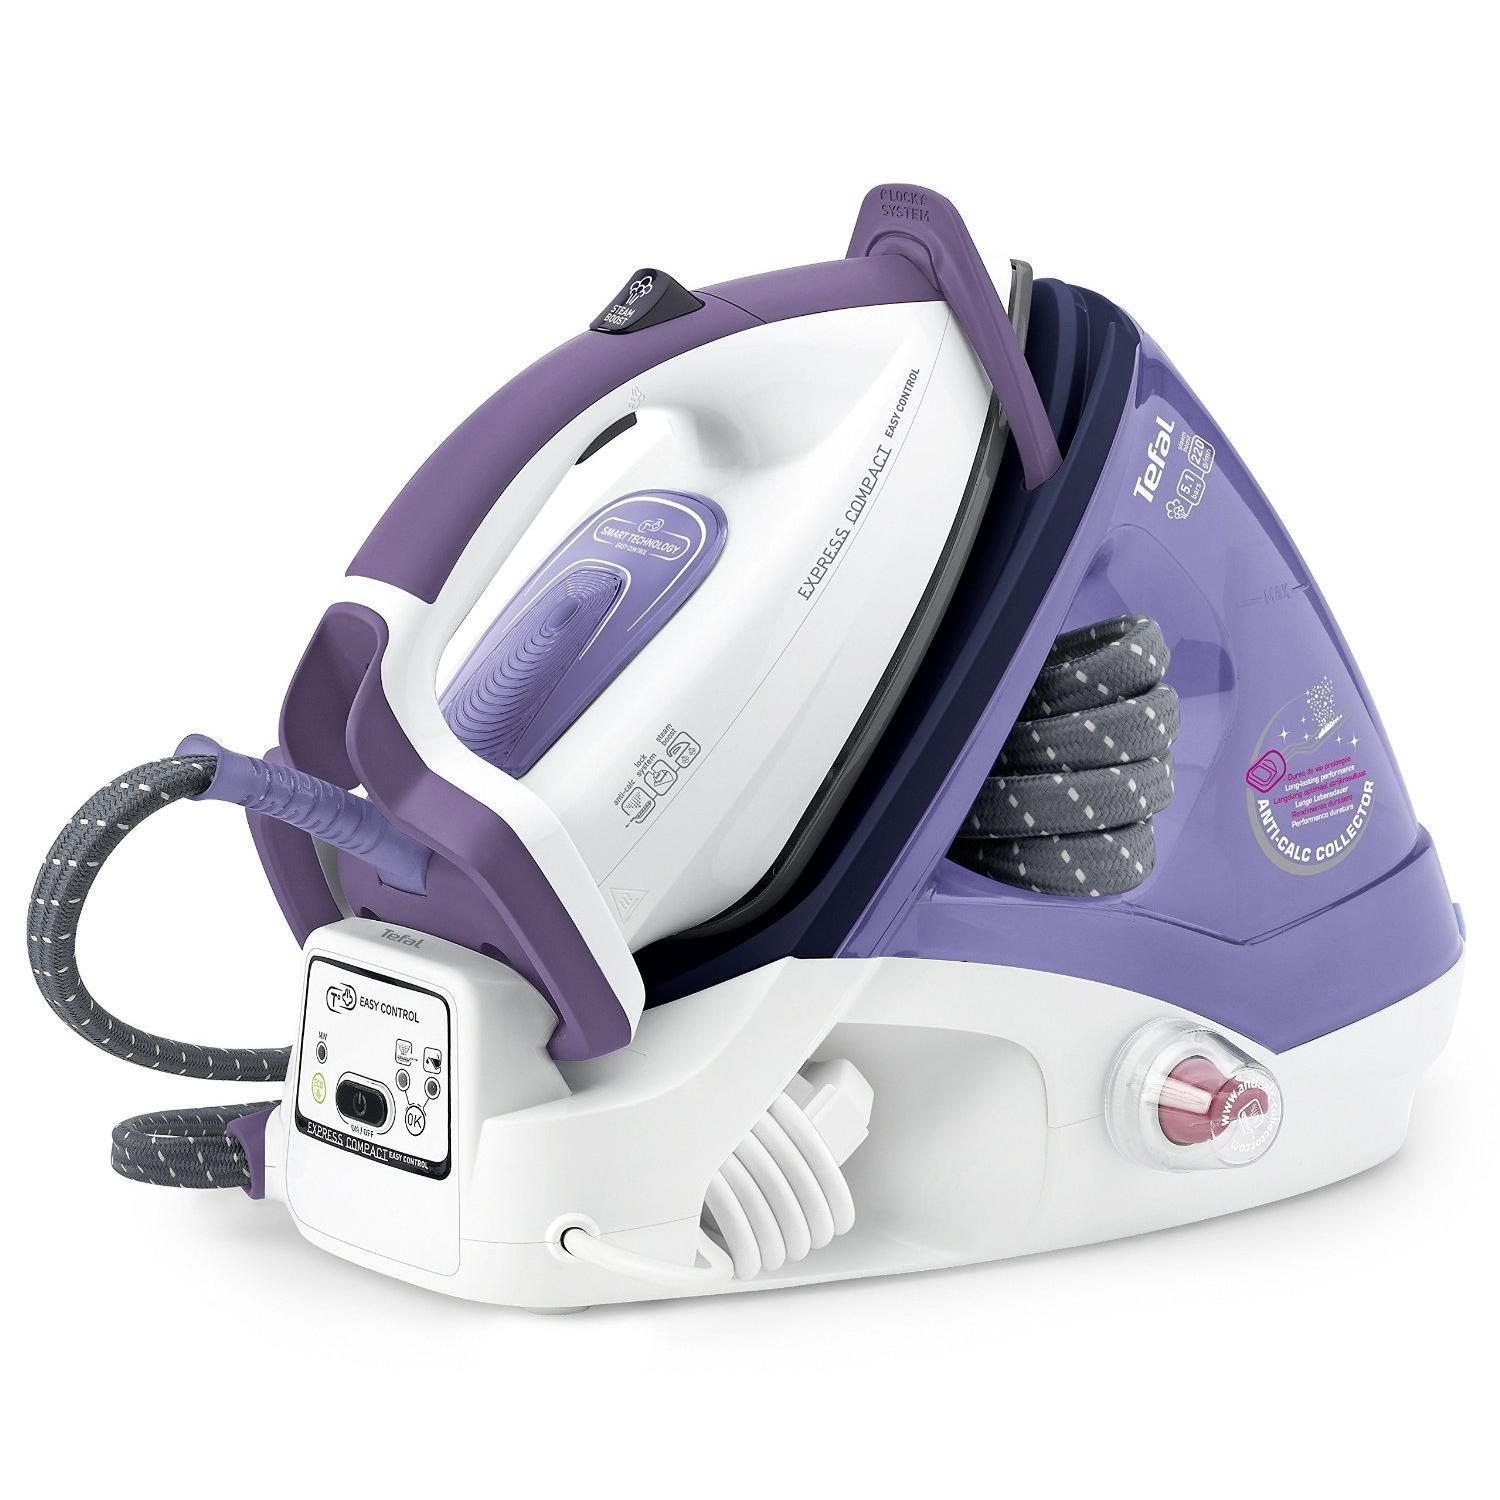 Tefal - GV7630 - Central vapeur express compact easy control